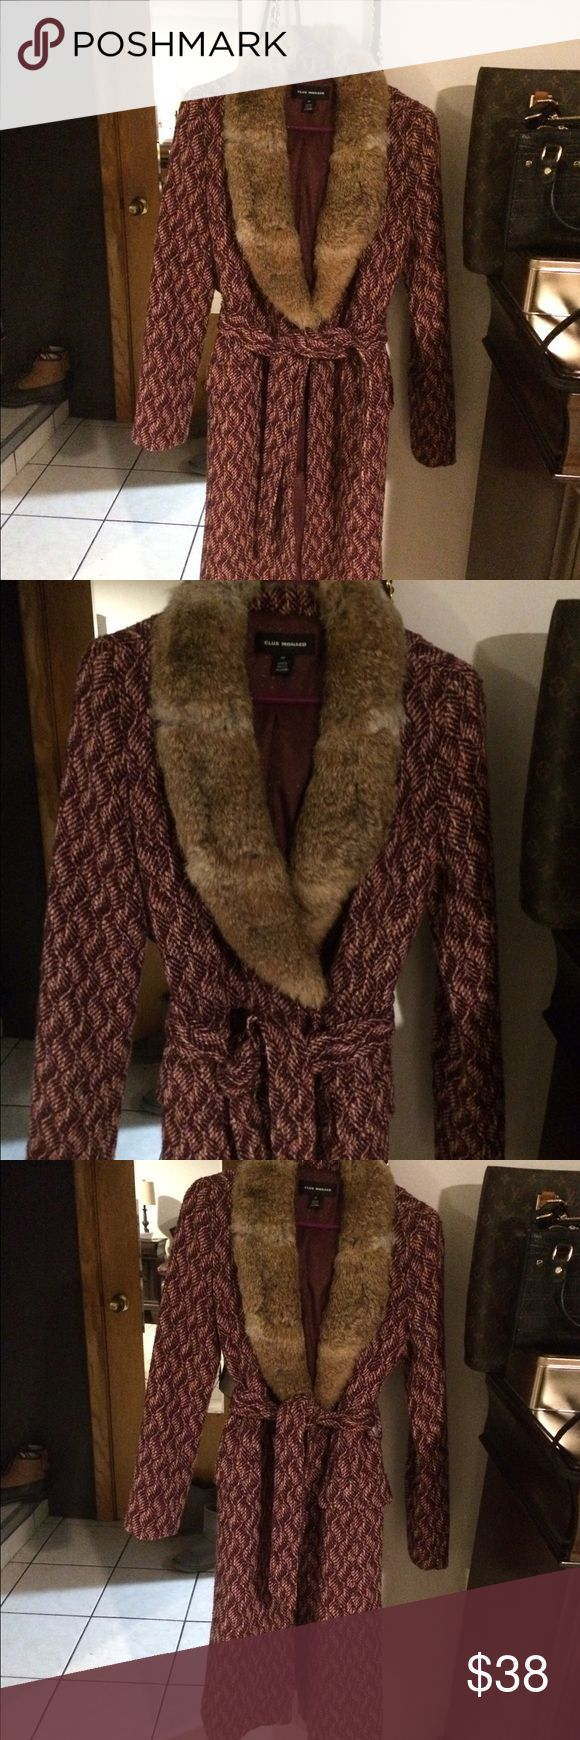 long coat tweed fur trench Beautiful long fur coat trench tweed. Price is firm. Club Monaco Jackets & Coats Trench Coats